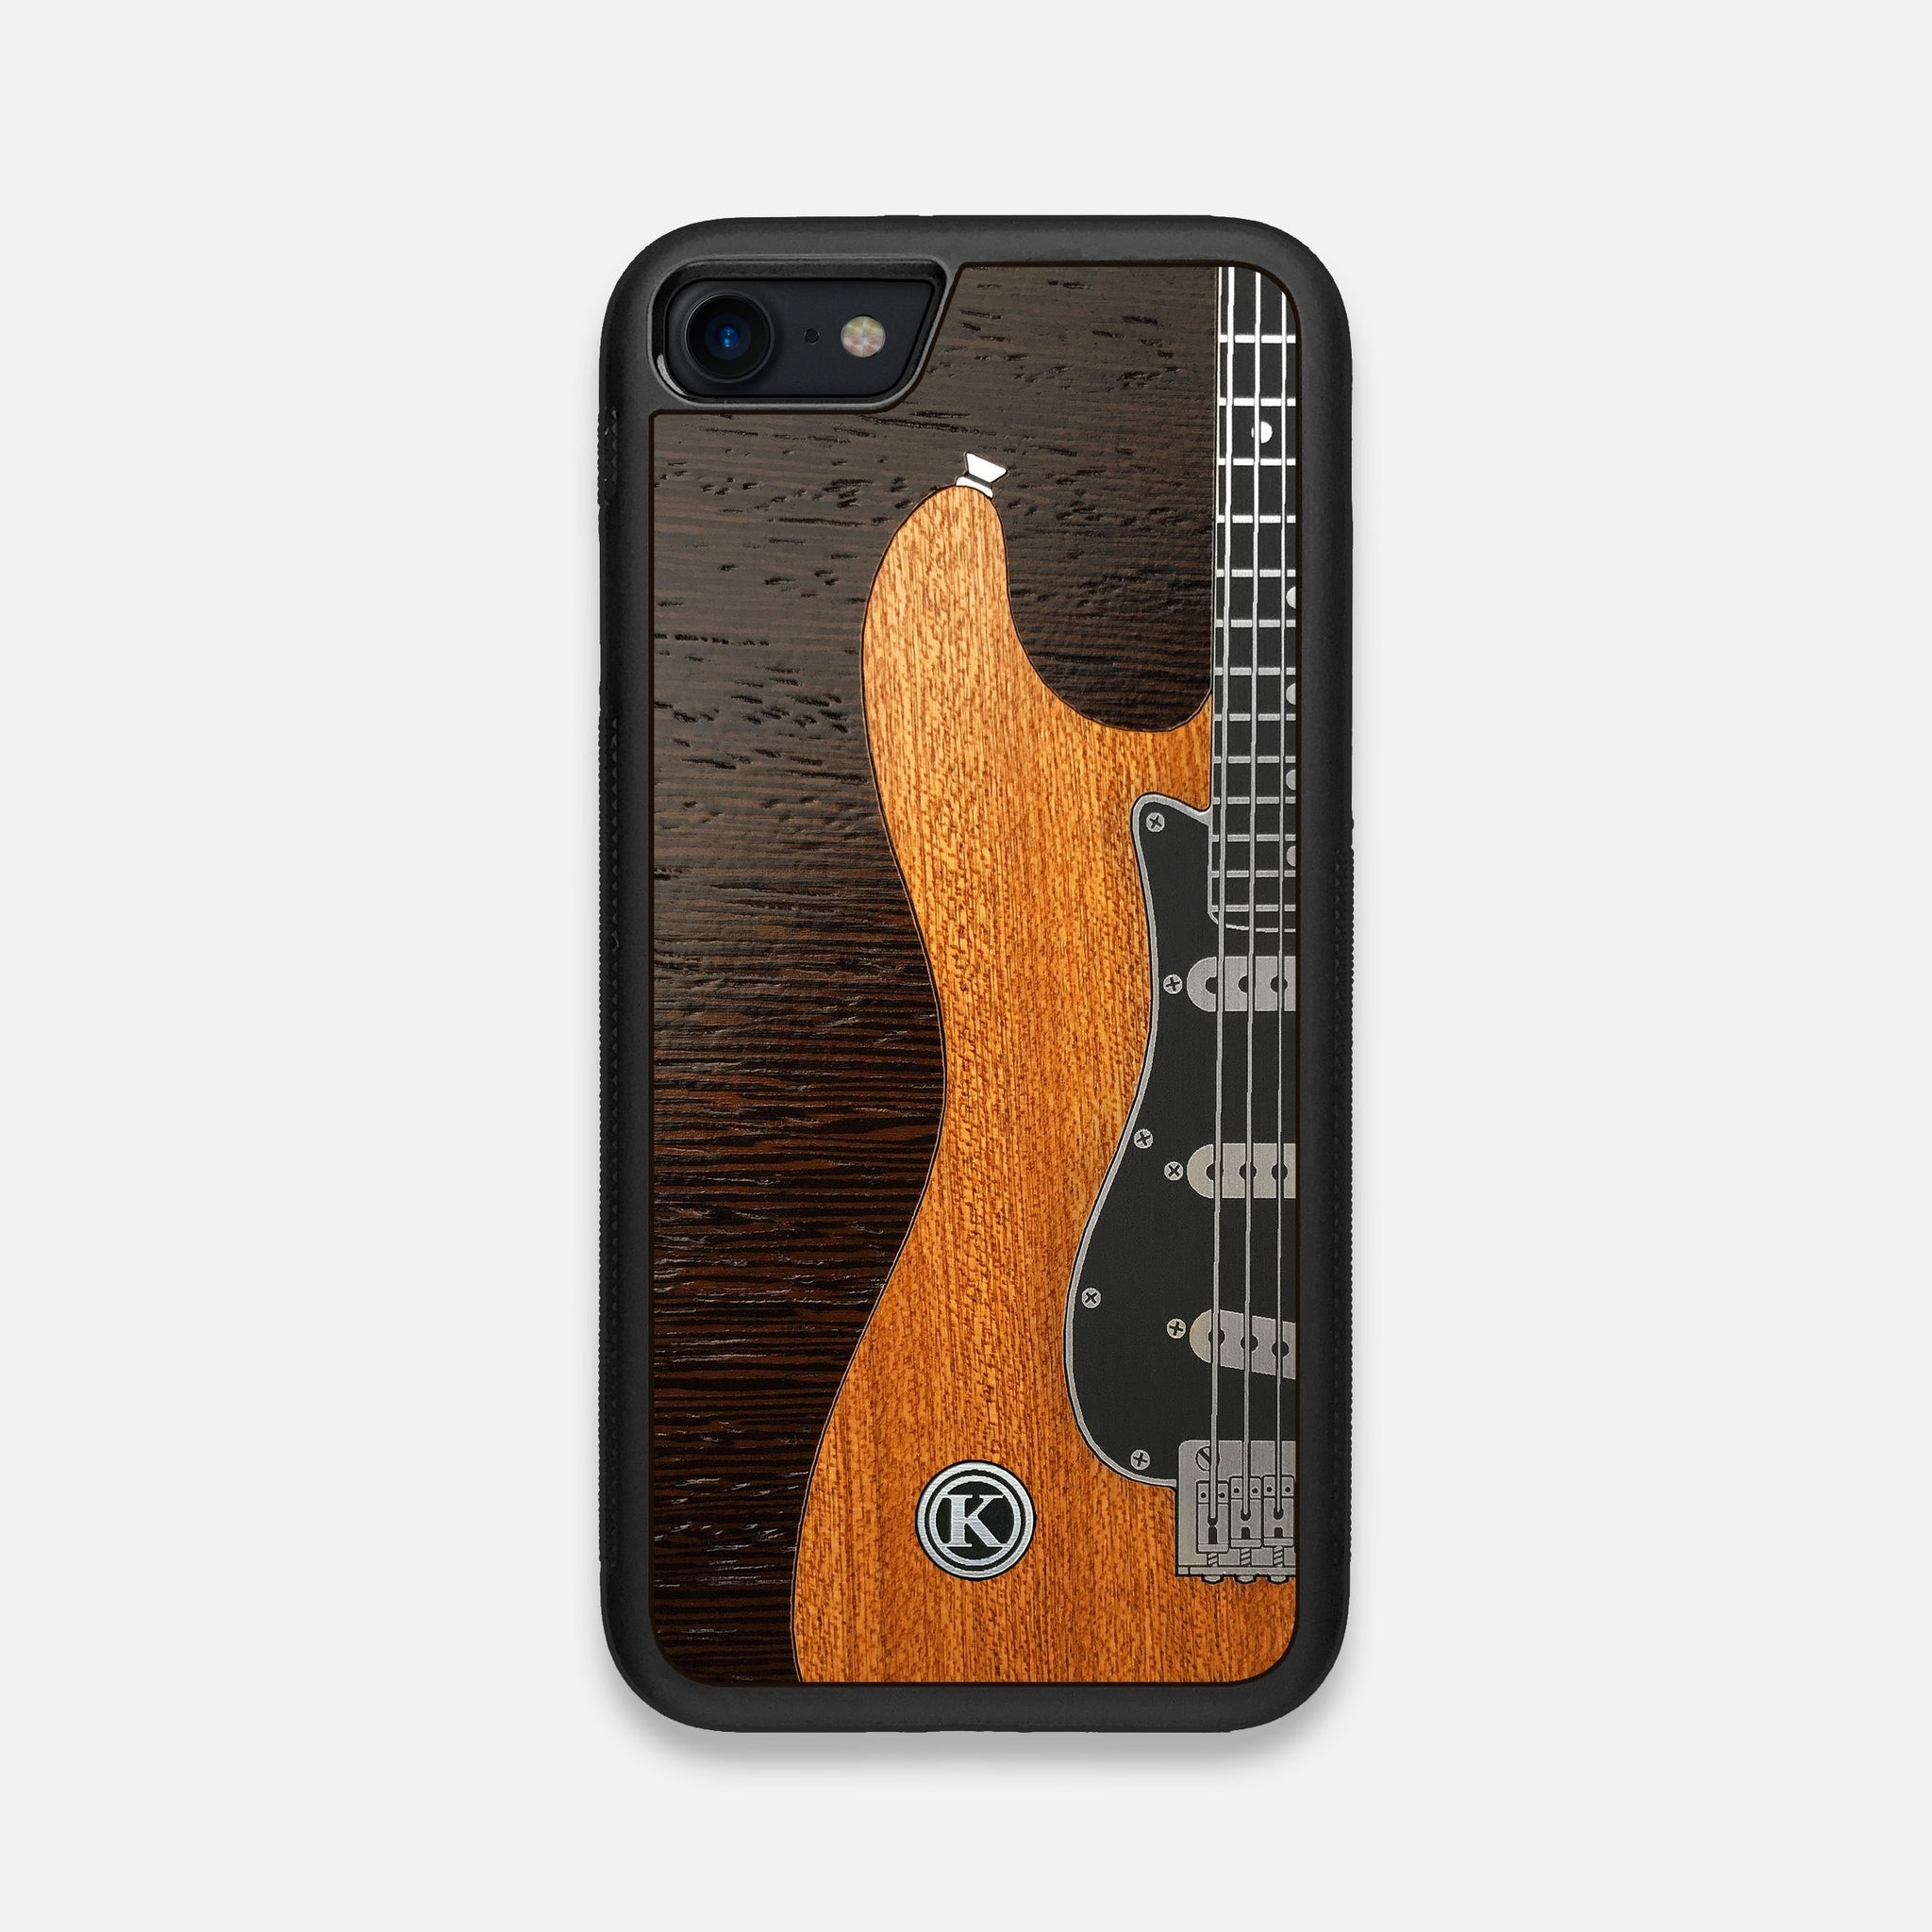 Front view of the Reverb Guitar Wood and Metallic  iPhone 7/8 Case by Keyway Designs